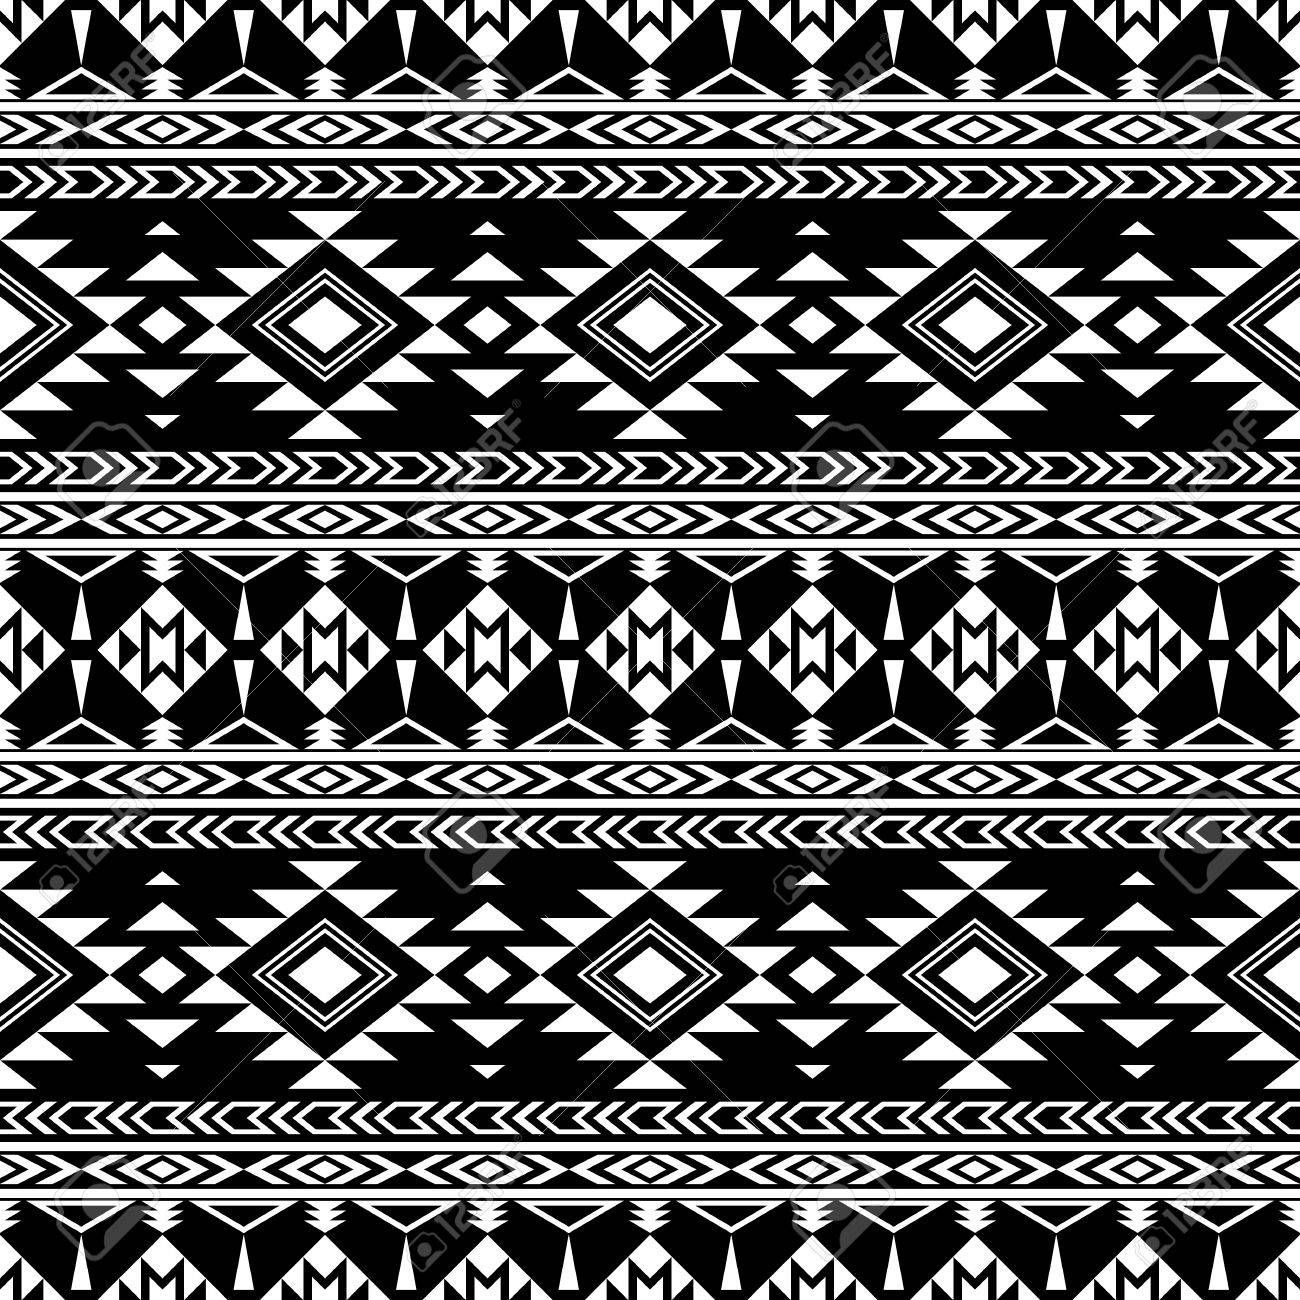 Boho Chic Seamless Pattern With Tribal Aztec Ornament Folklore Stylized Abstract Wallpaper Black Background